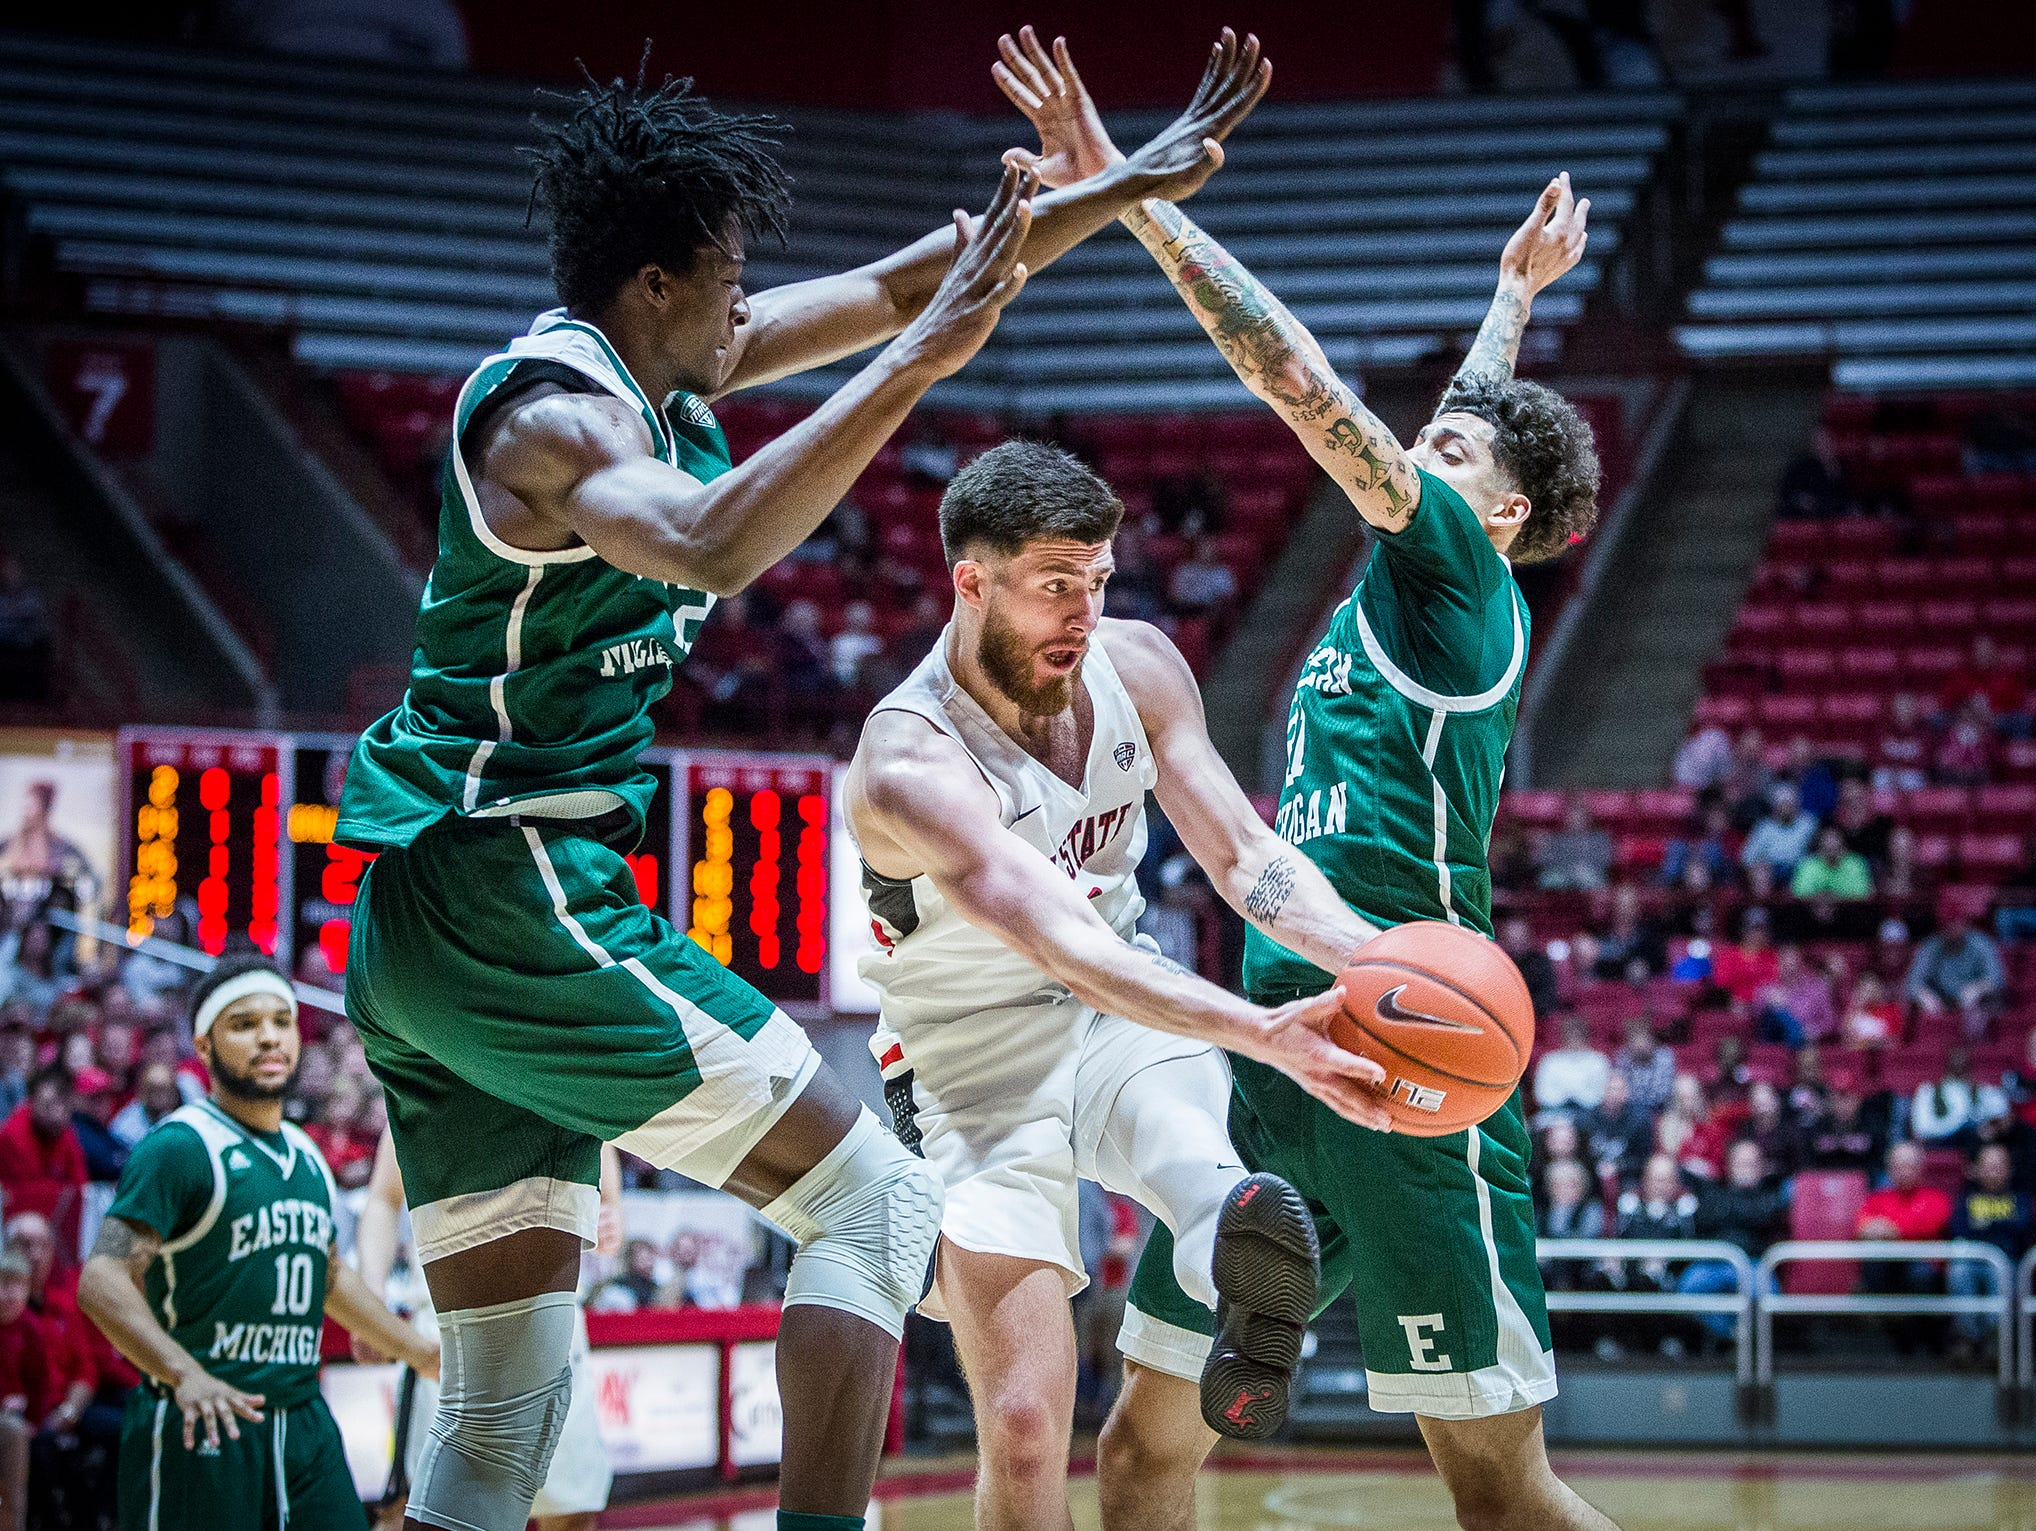 Ball State's Tayler Persons passes past Eastern Michigan's defense during their game at Worthen Arena Tuesday, Jan. 8, 2019.